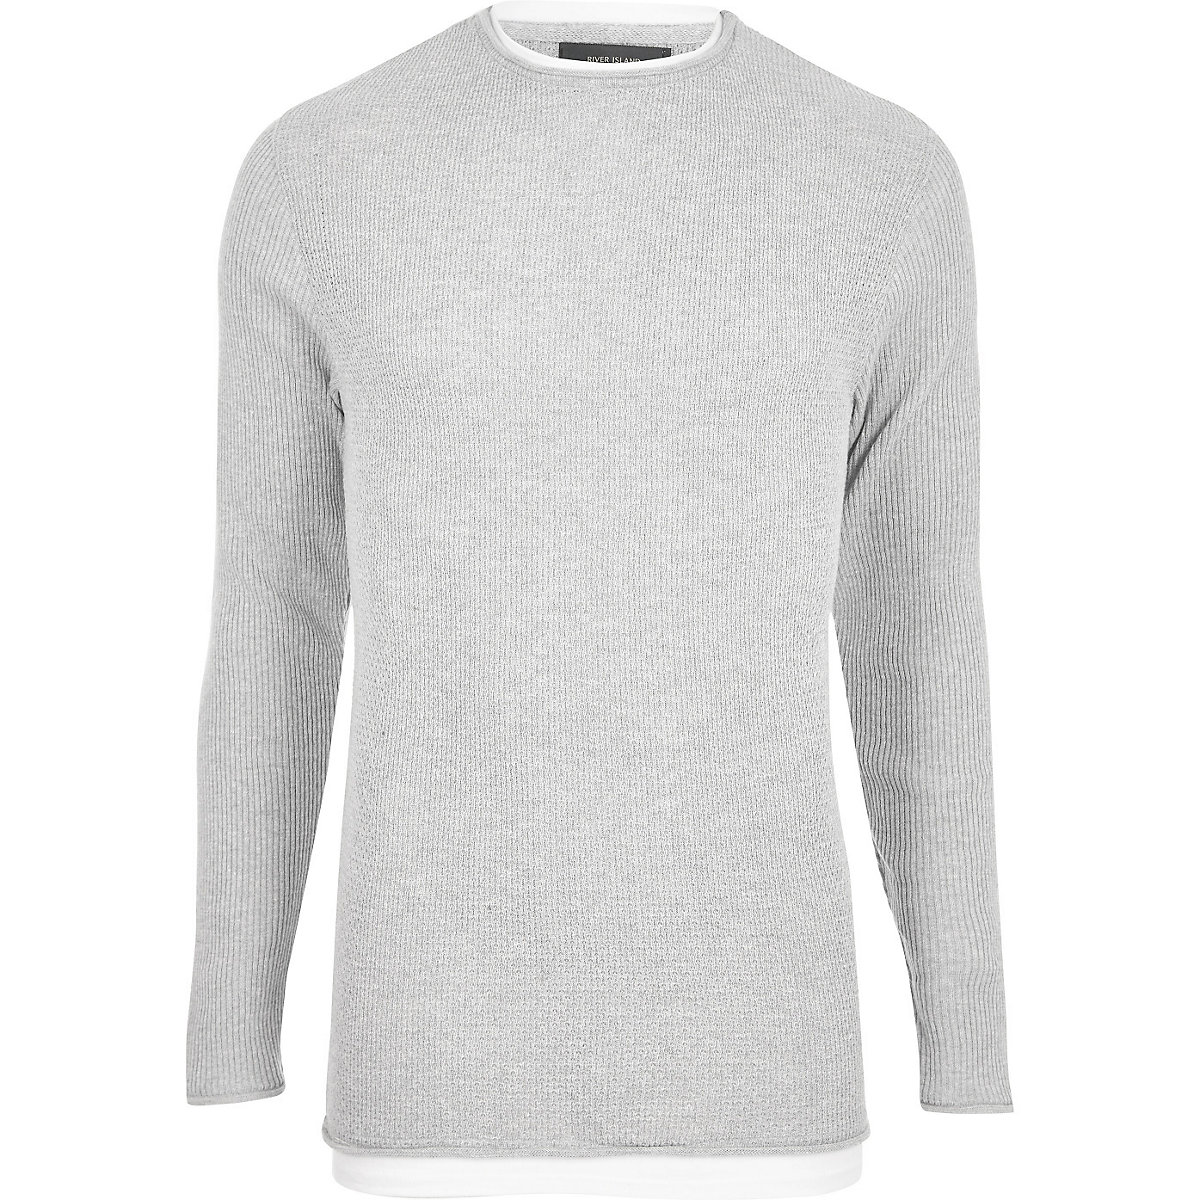 Grey double layer slim fit sweater